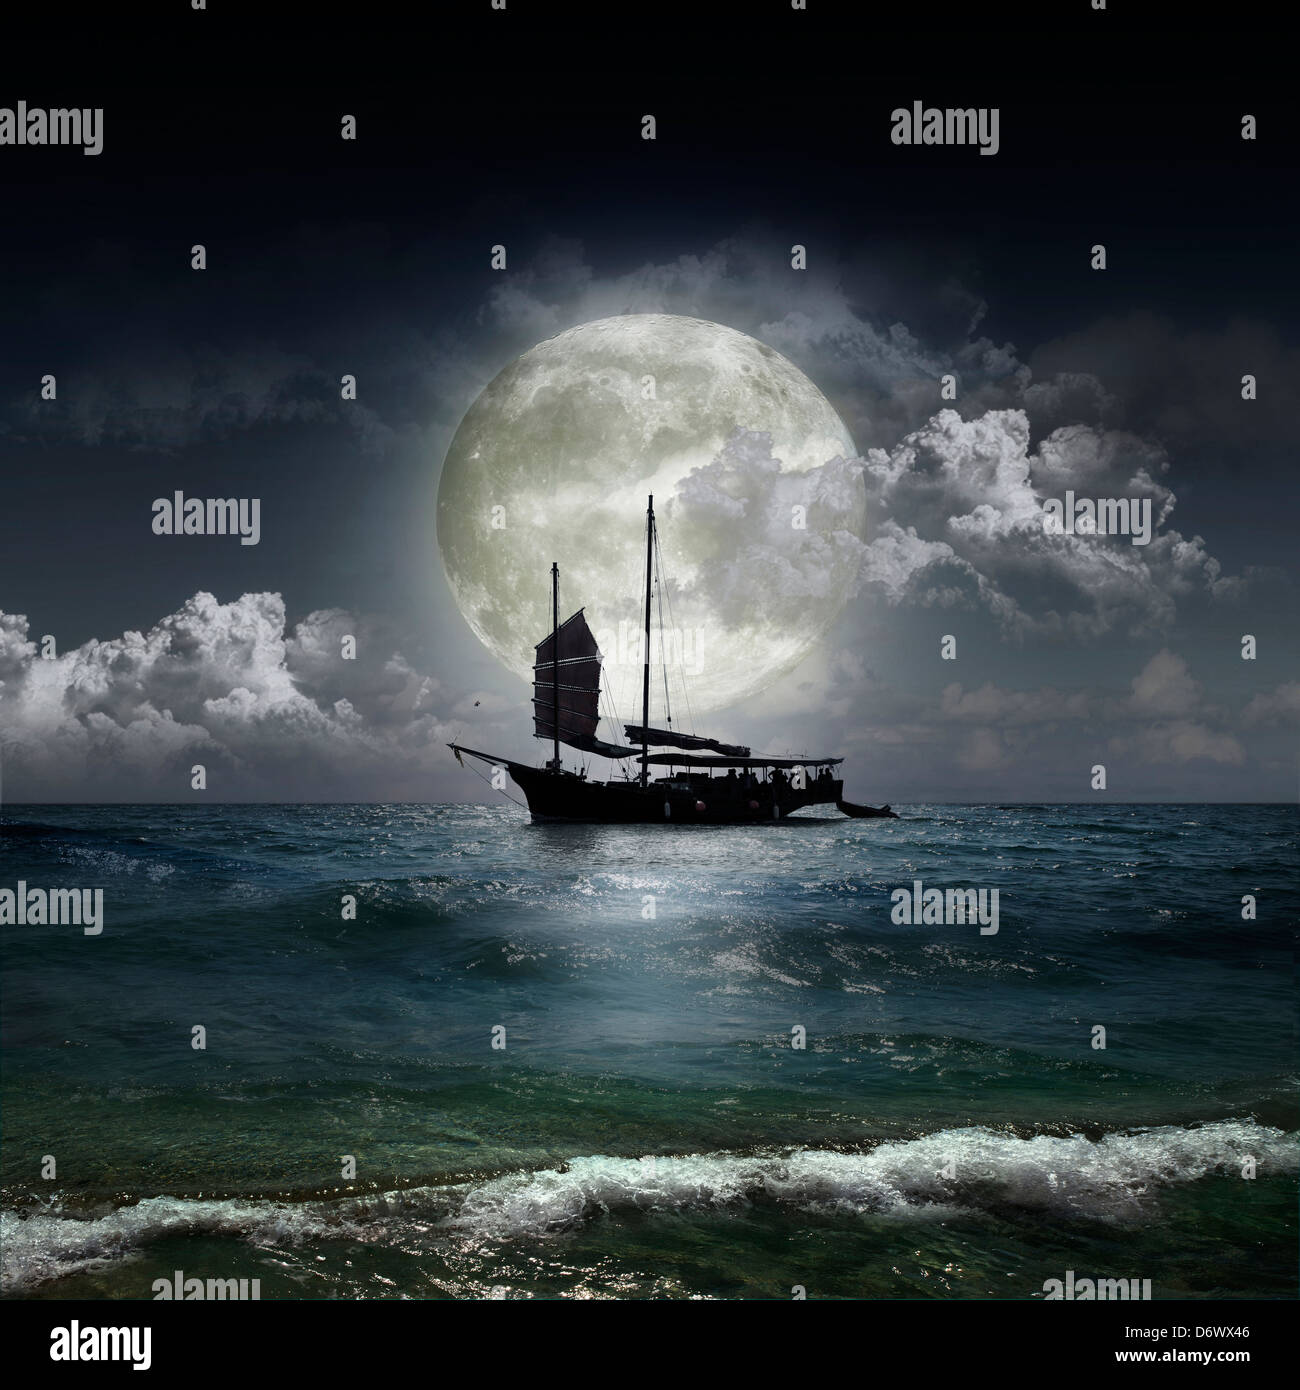 Magical evening on the ocean and the moon - Stock Image